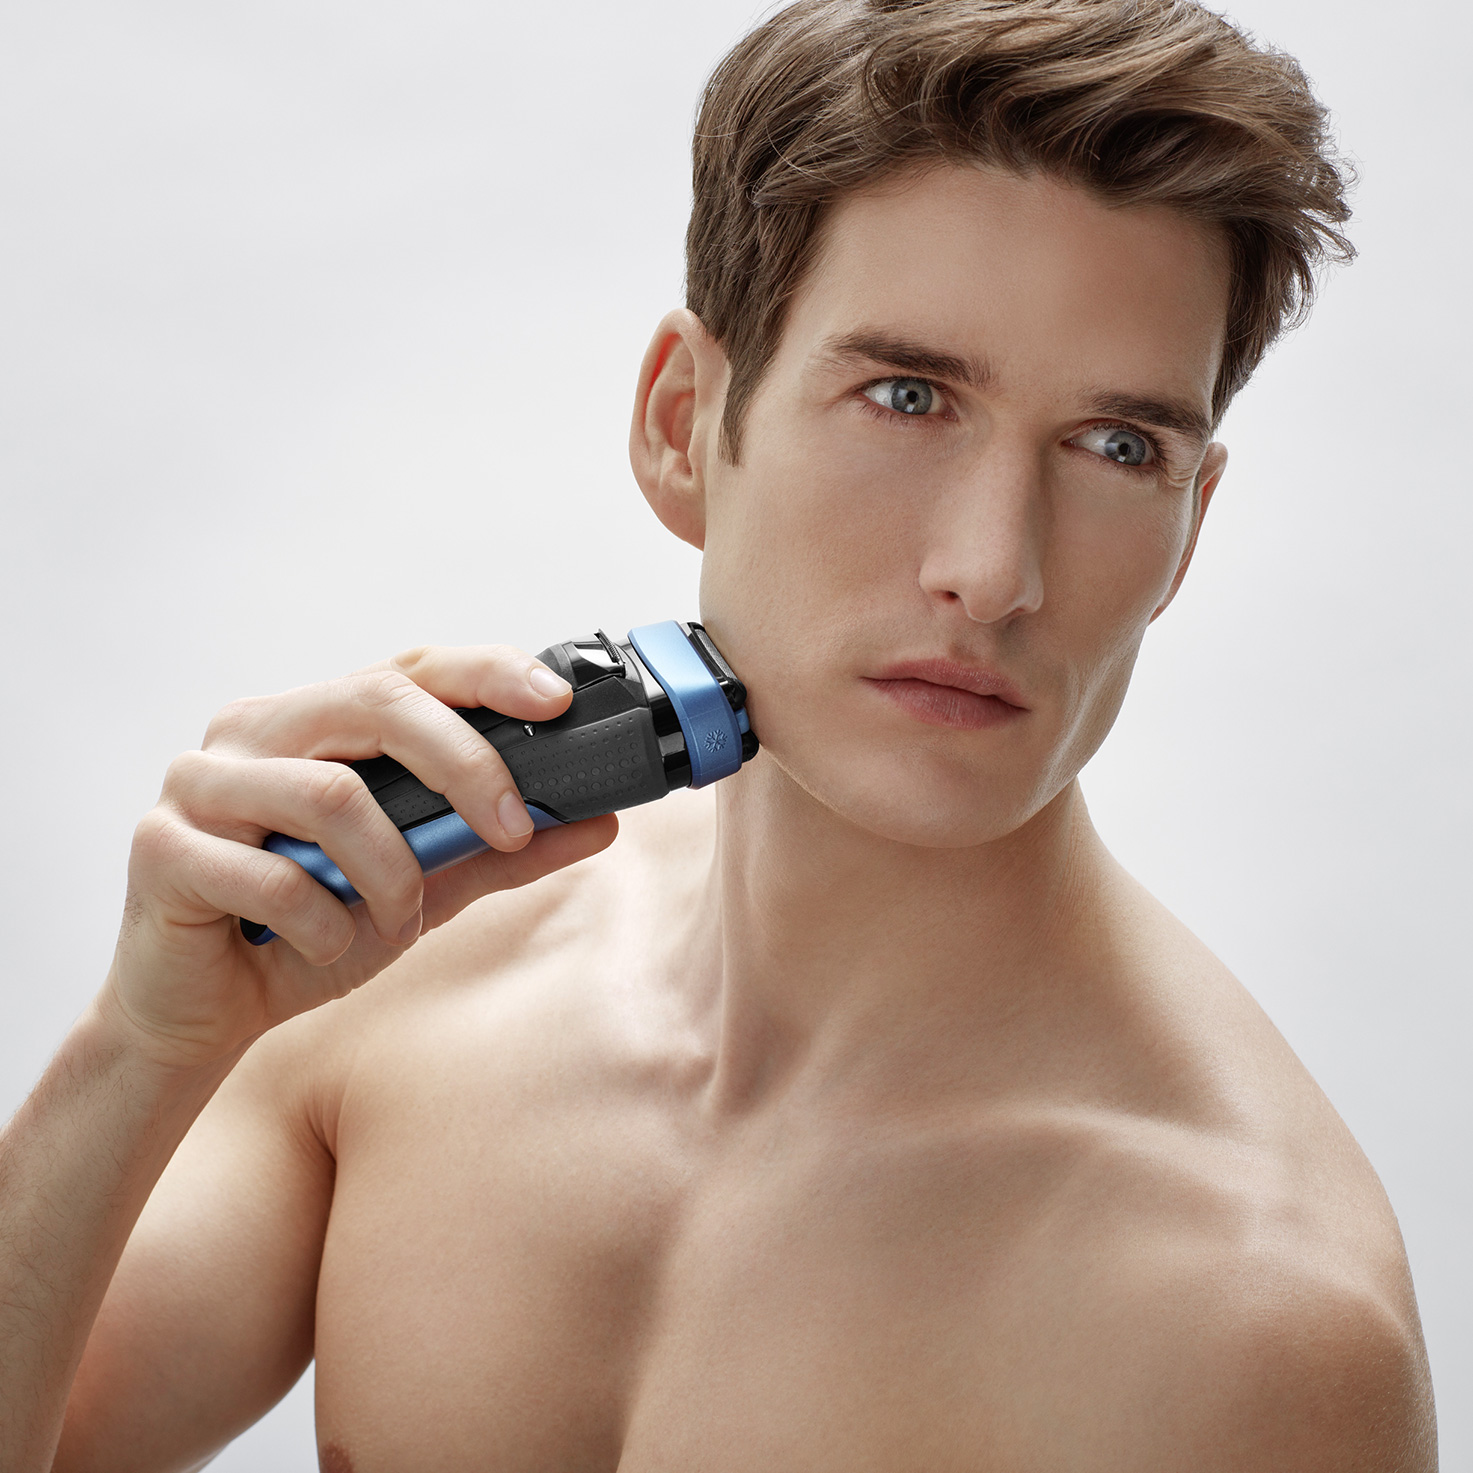 Series 3 °CoolTec CT4s shaver